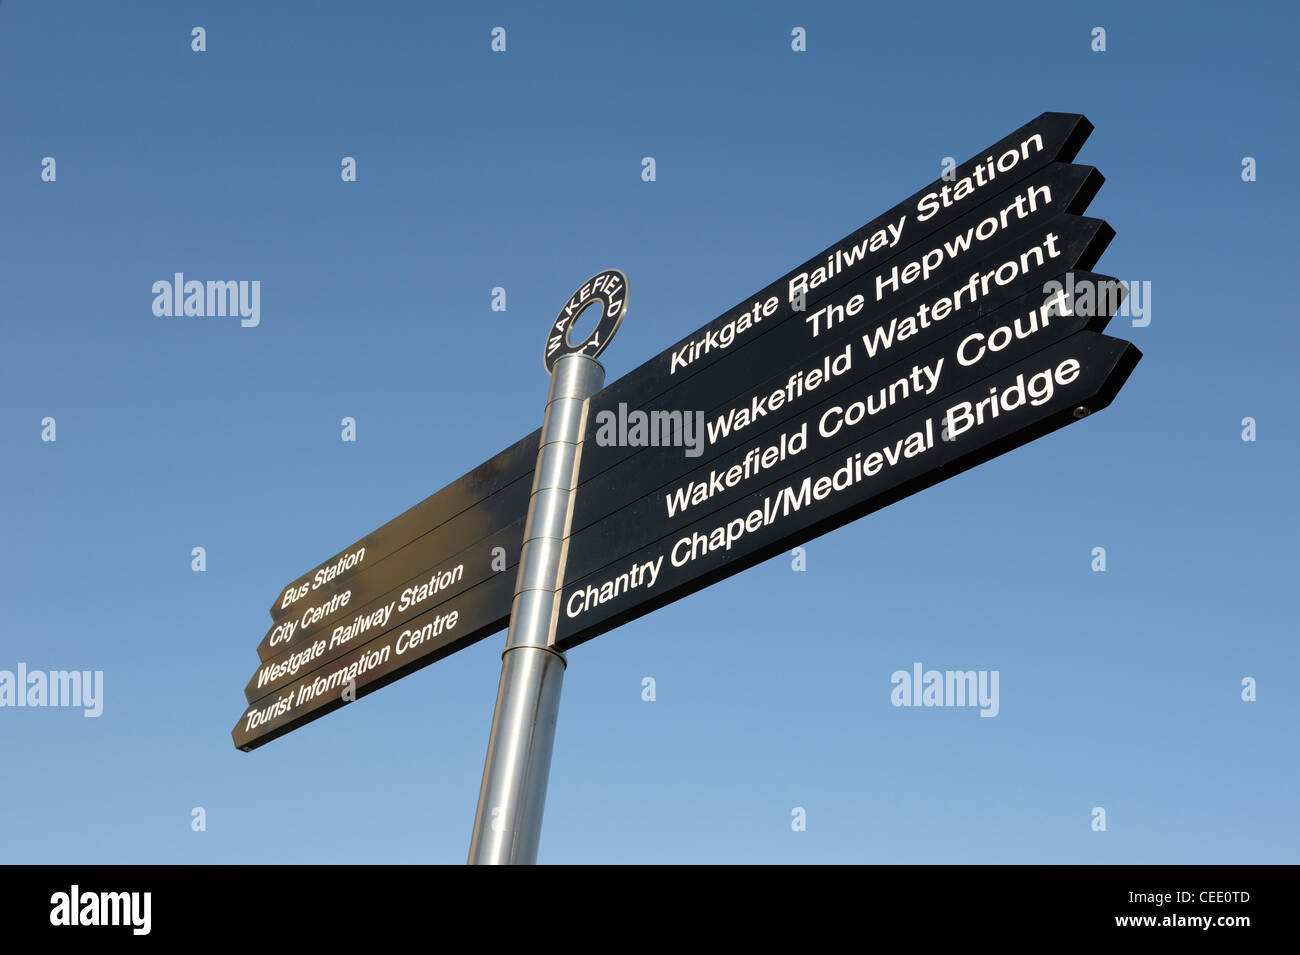 Wakefield city centre landmark sign - Stock Image